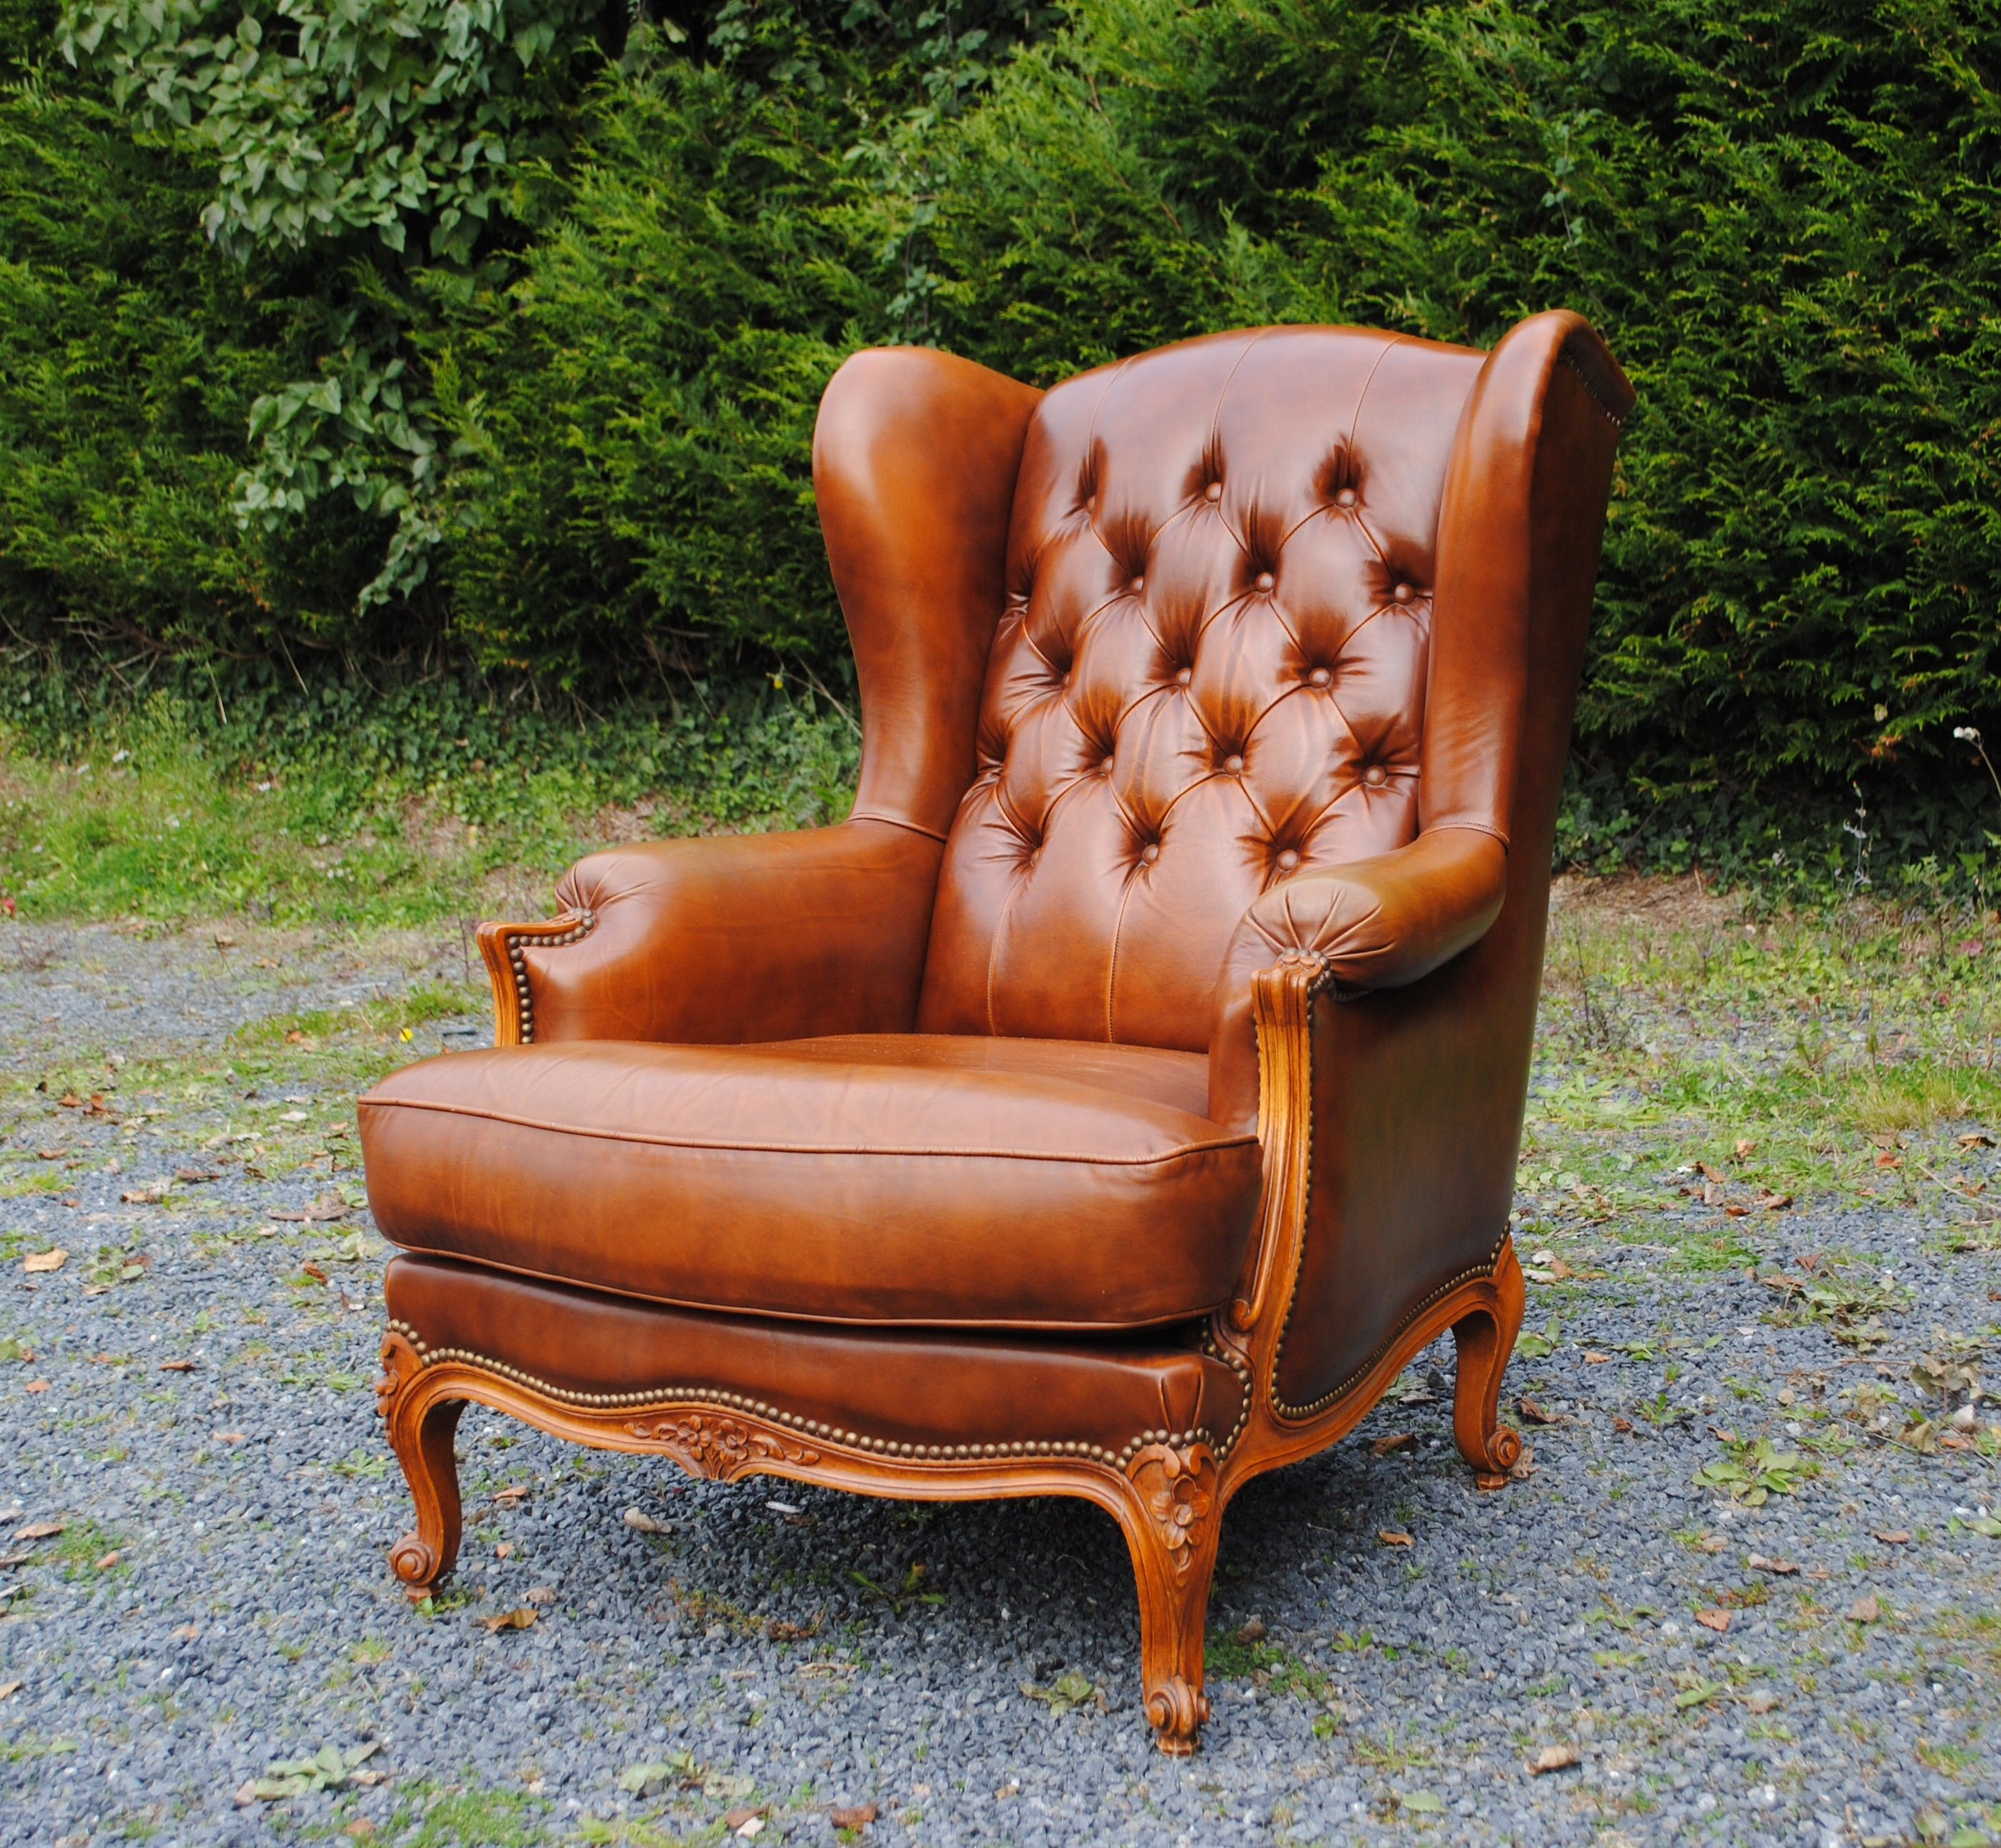 Vintage Louis Style Leather Chair in Cigar Brown Leather a